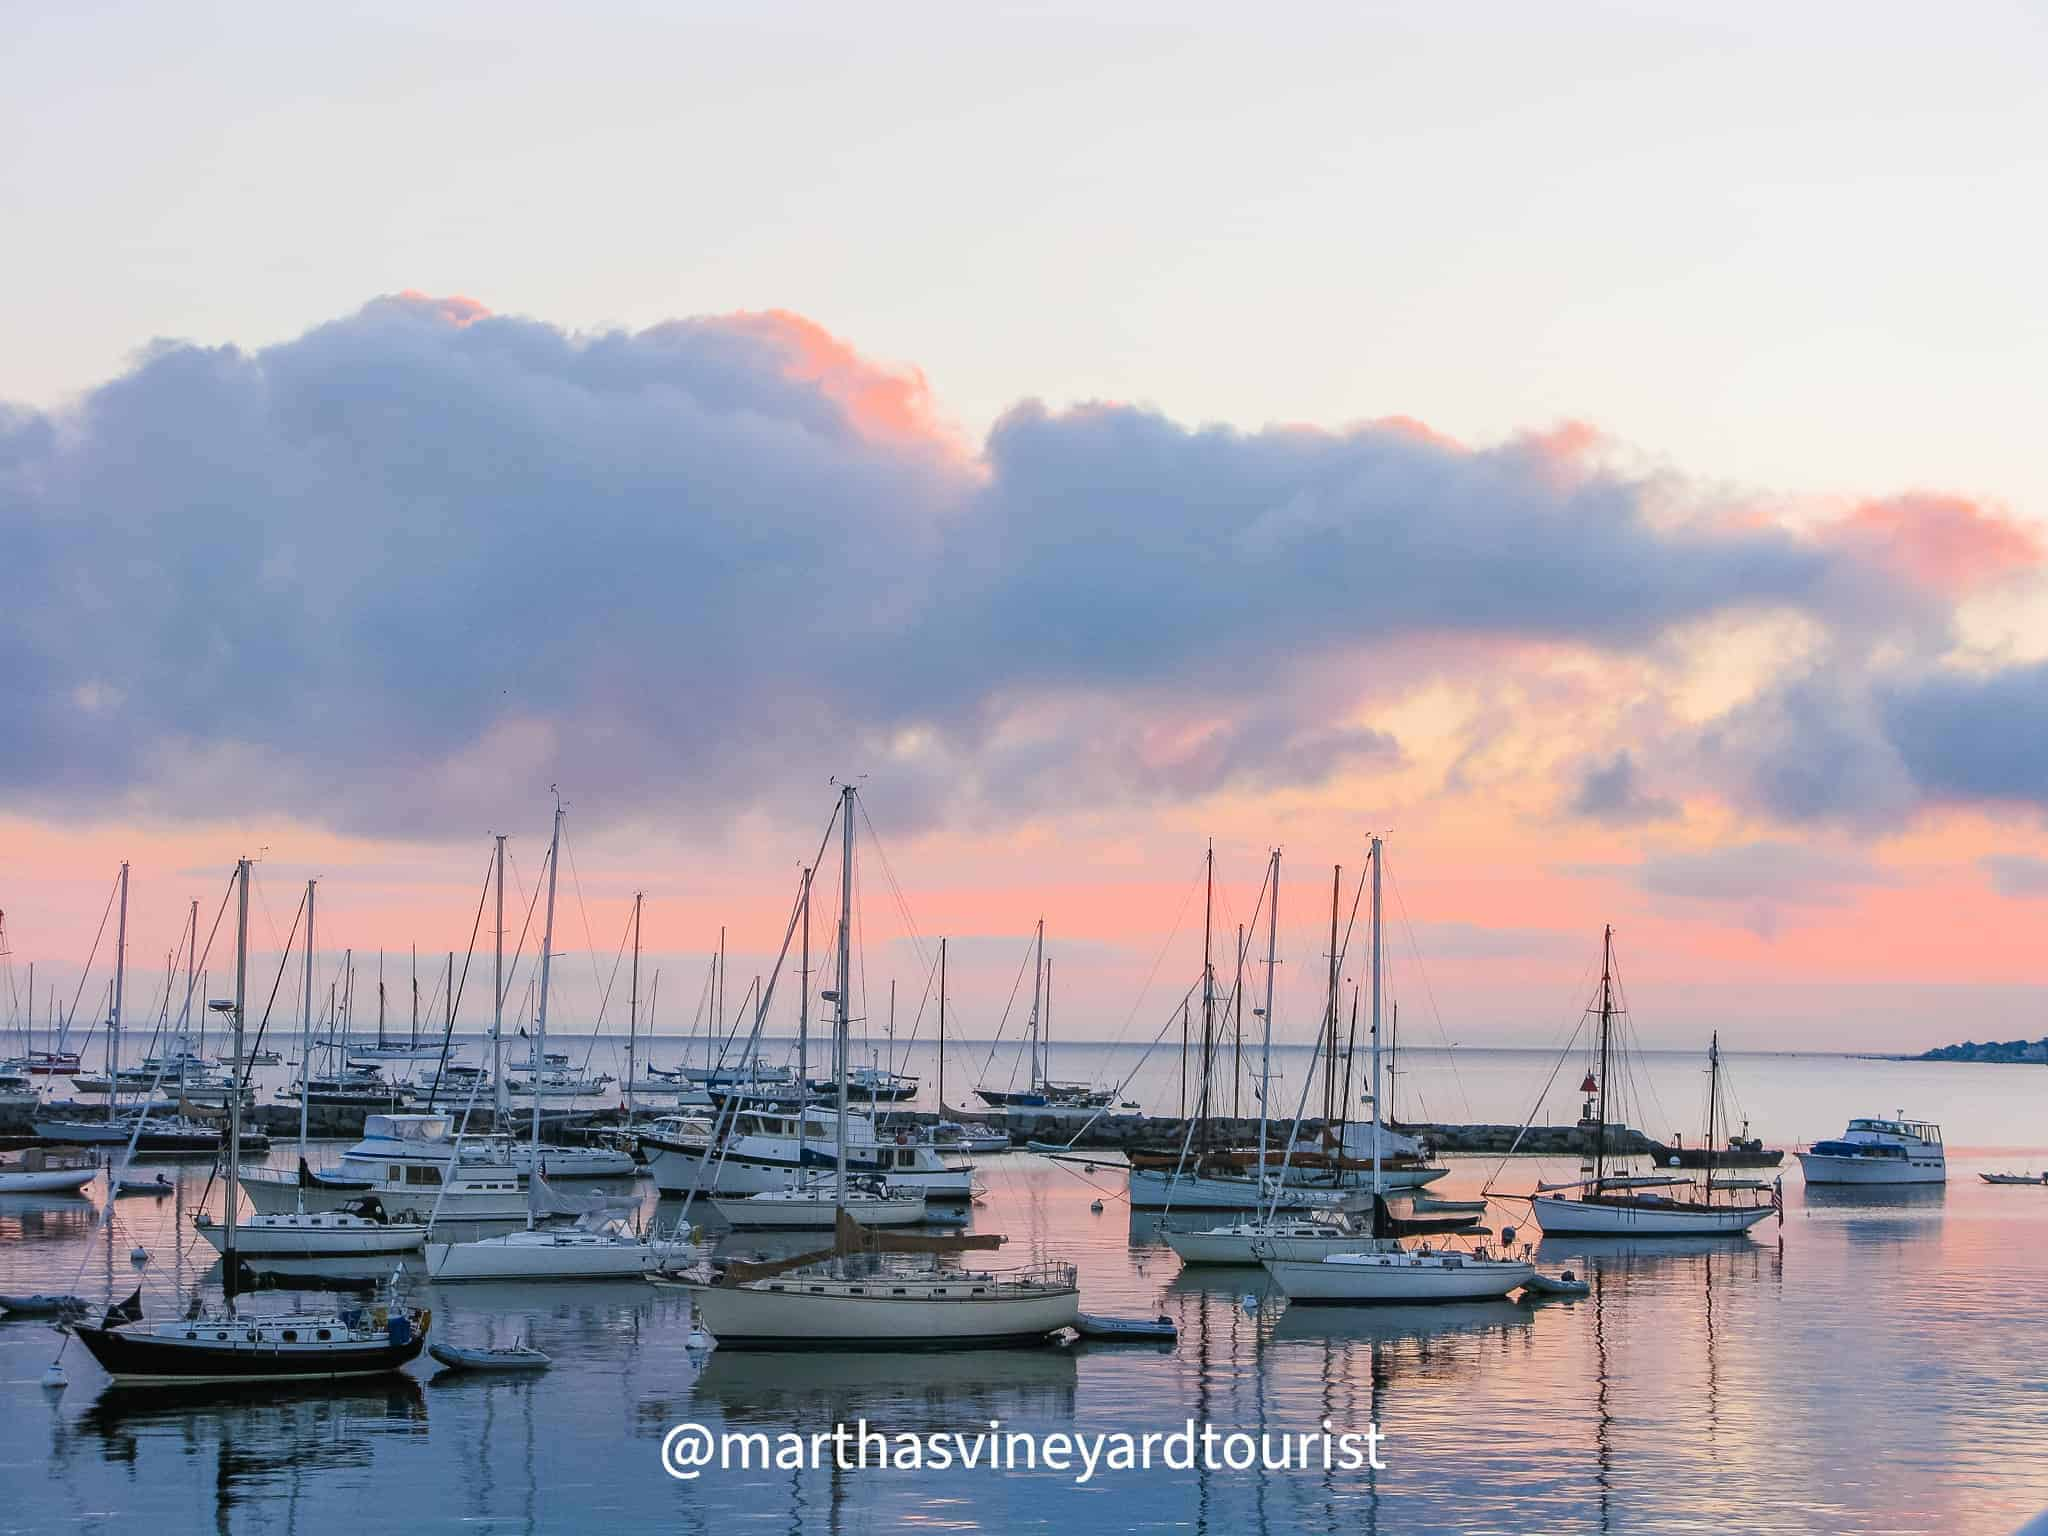 Vineyard Haven harbor on Martha's Vineyard at sunrise